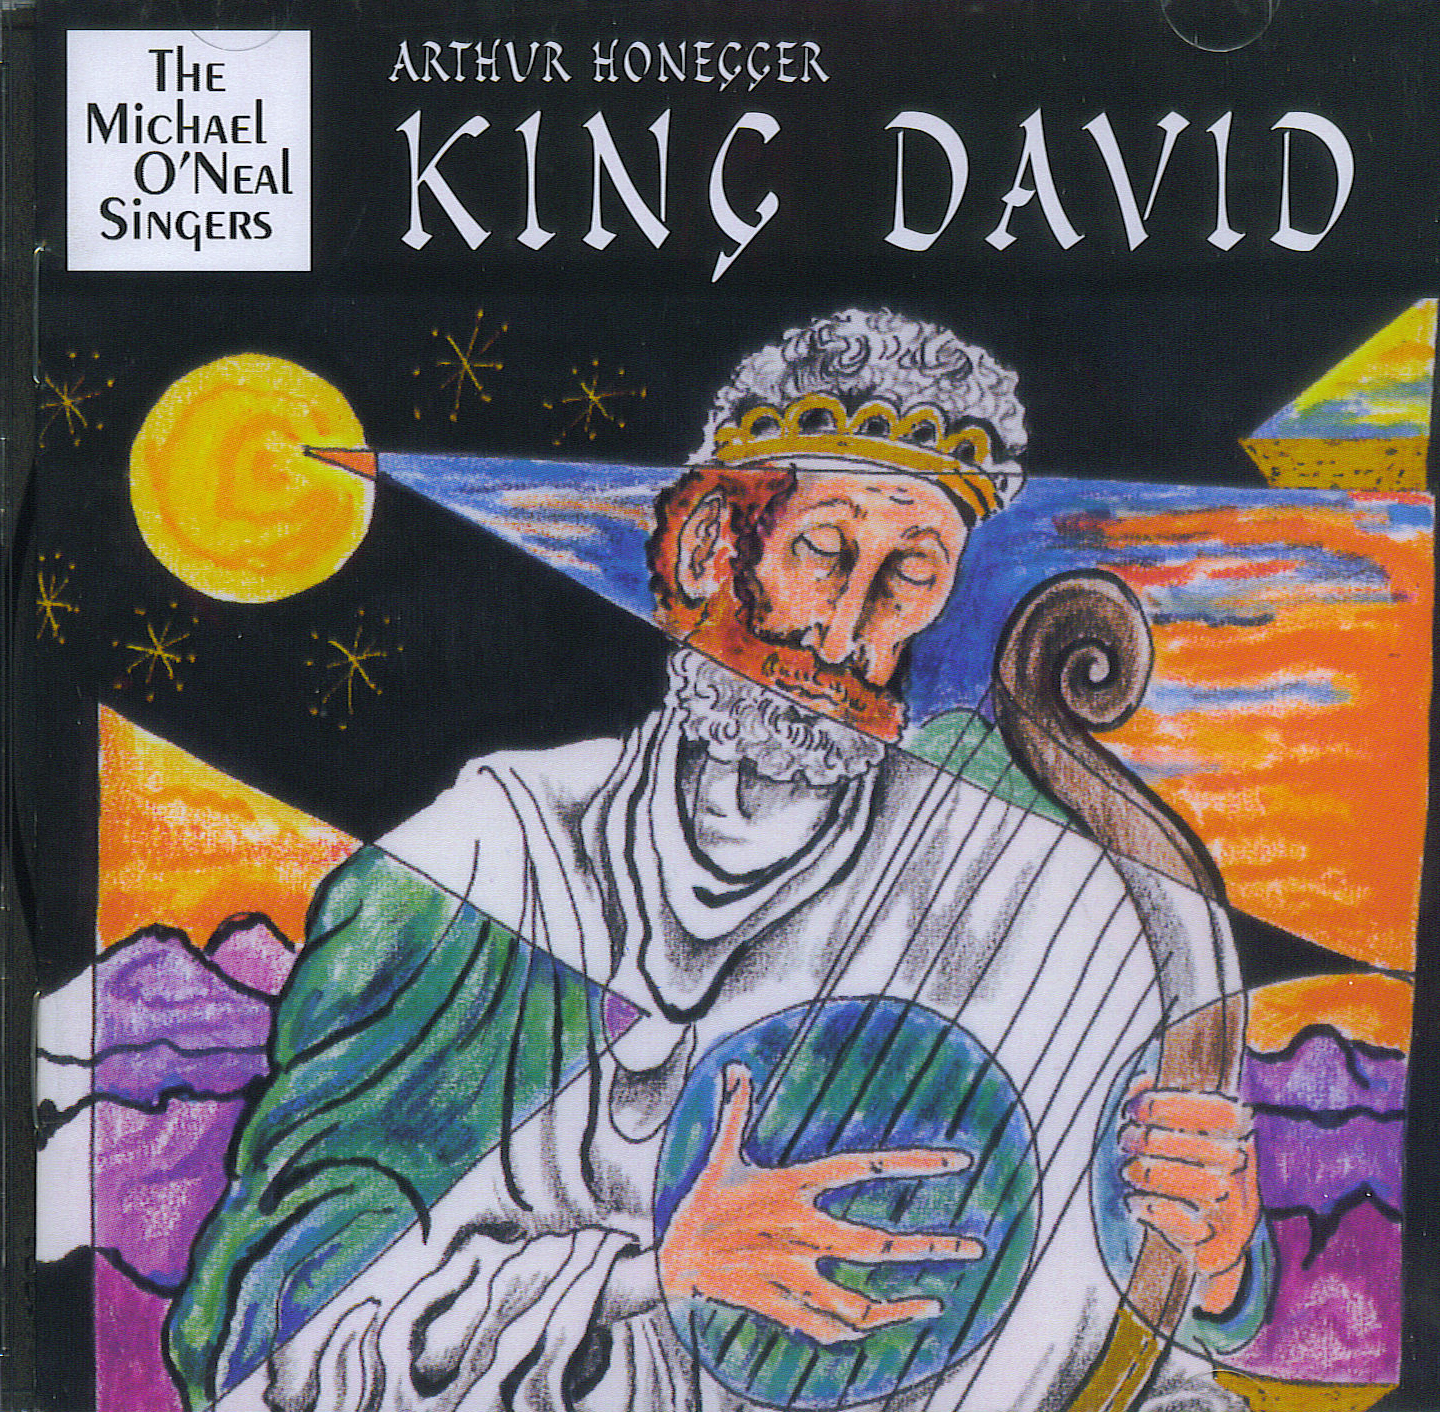 king david review Reviews may 20, 1997 12:00am pt king david perhaps reverence is best left at the altar composer alan menken, whose sweet pop ballads and sprightly upbeat tunes virtually resurrected the disney.